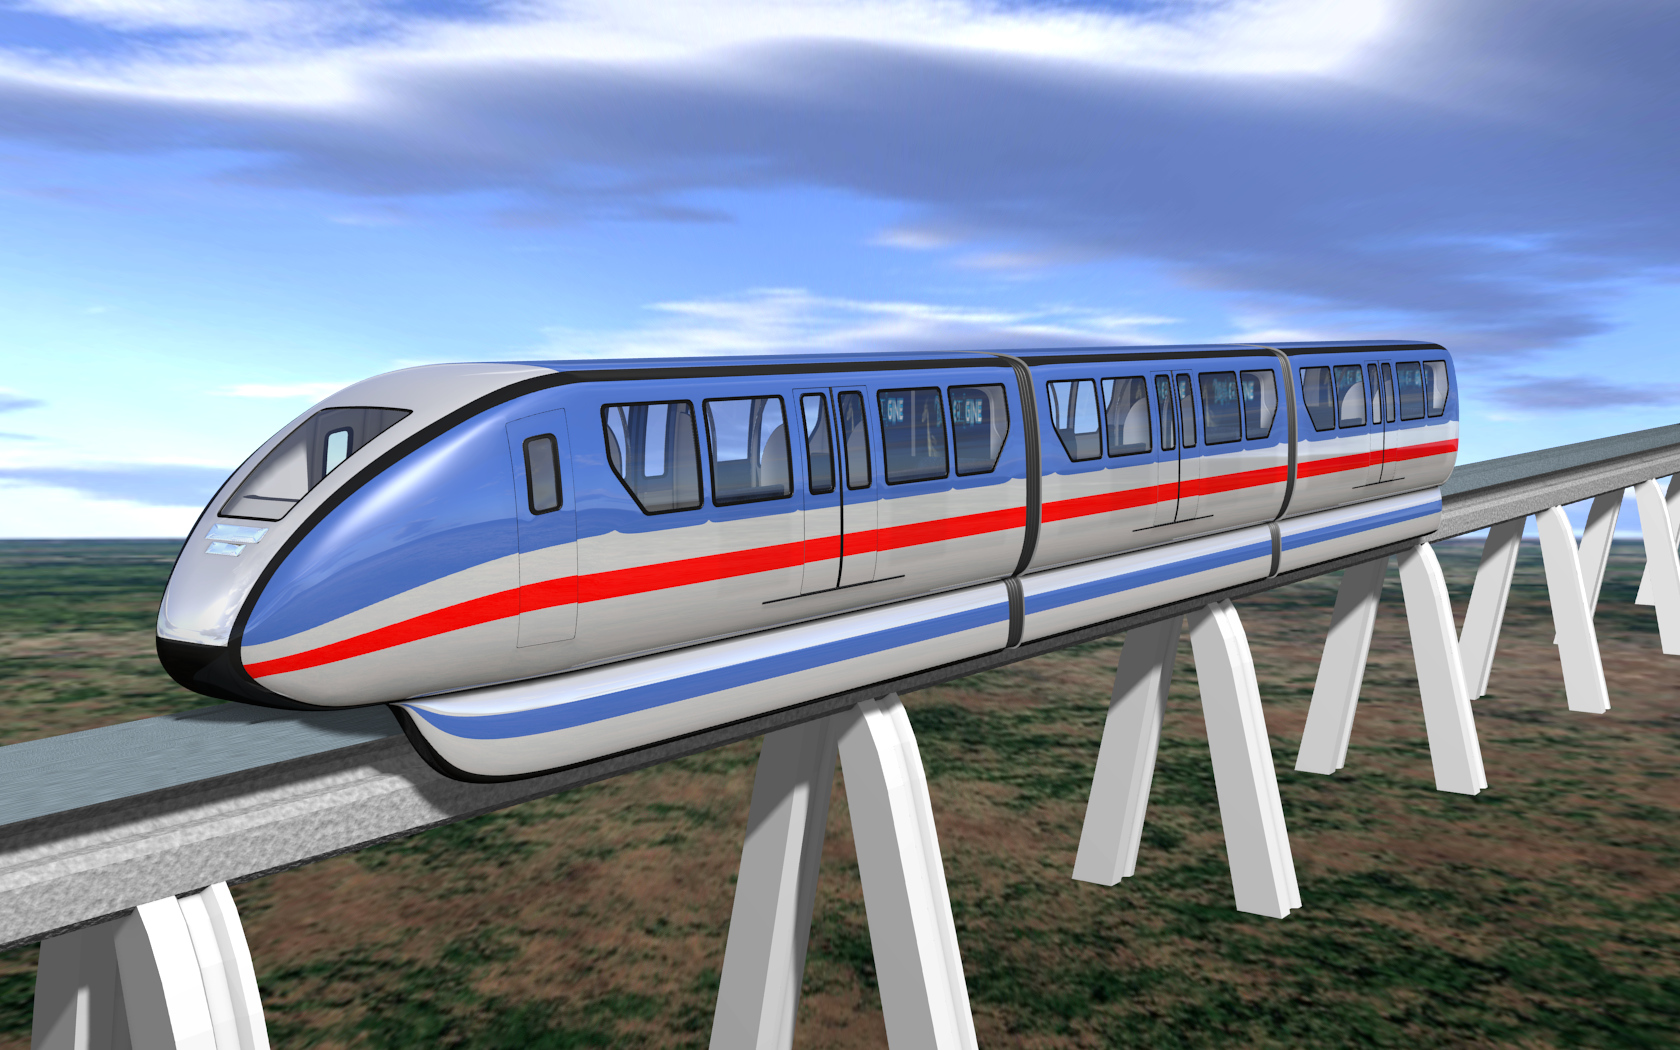 Monorail Stock Photos and Images. 0monorail pictures and